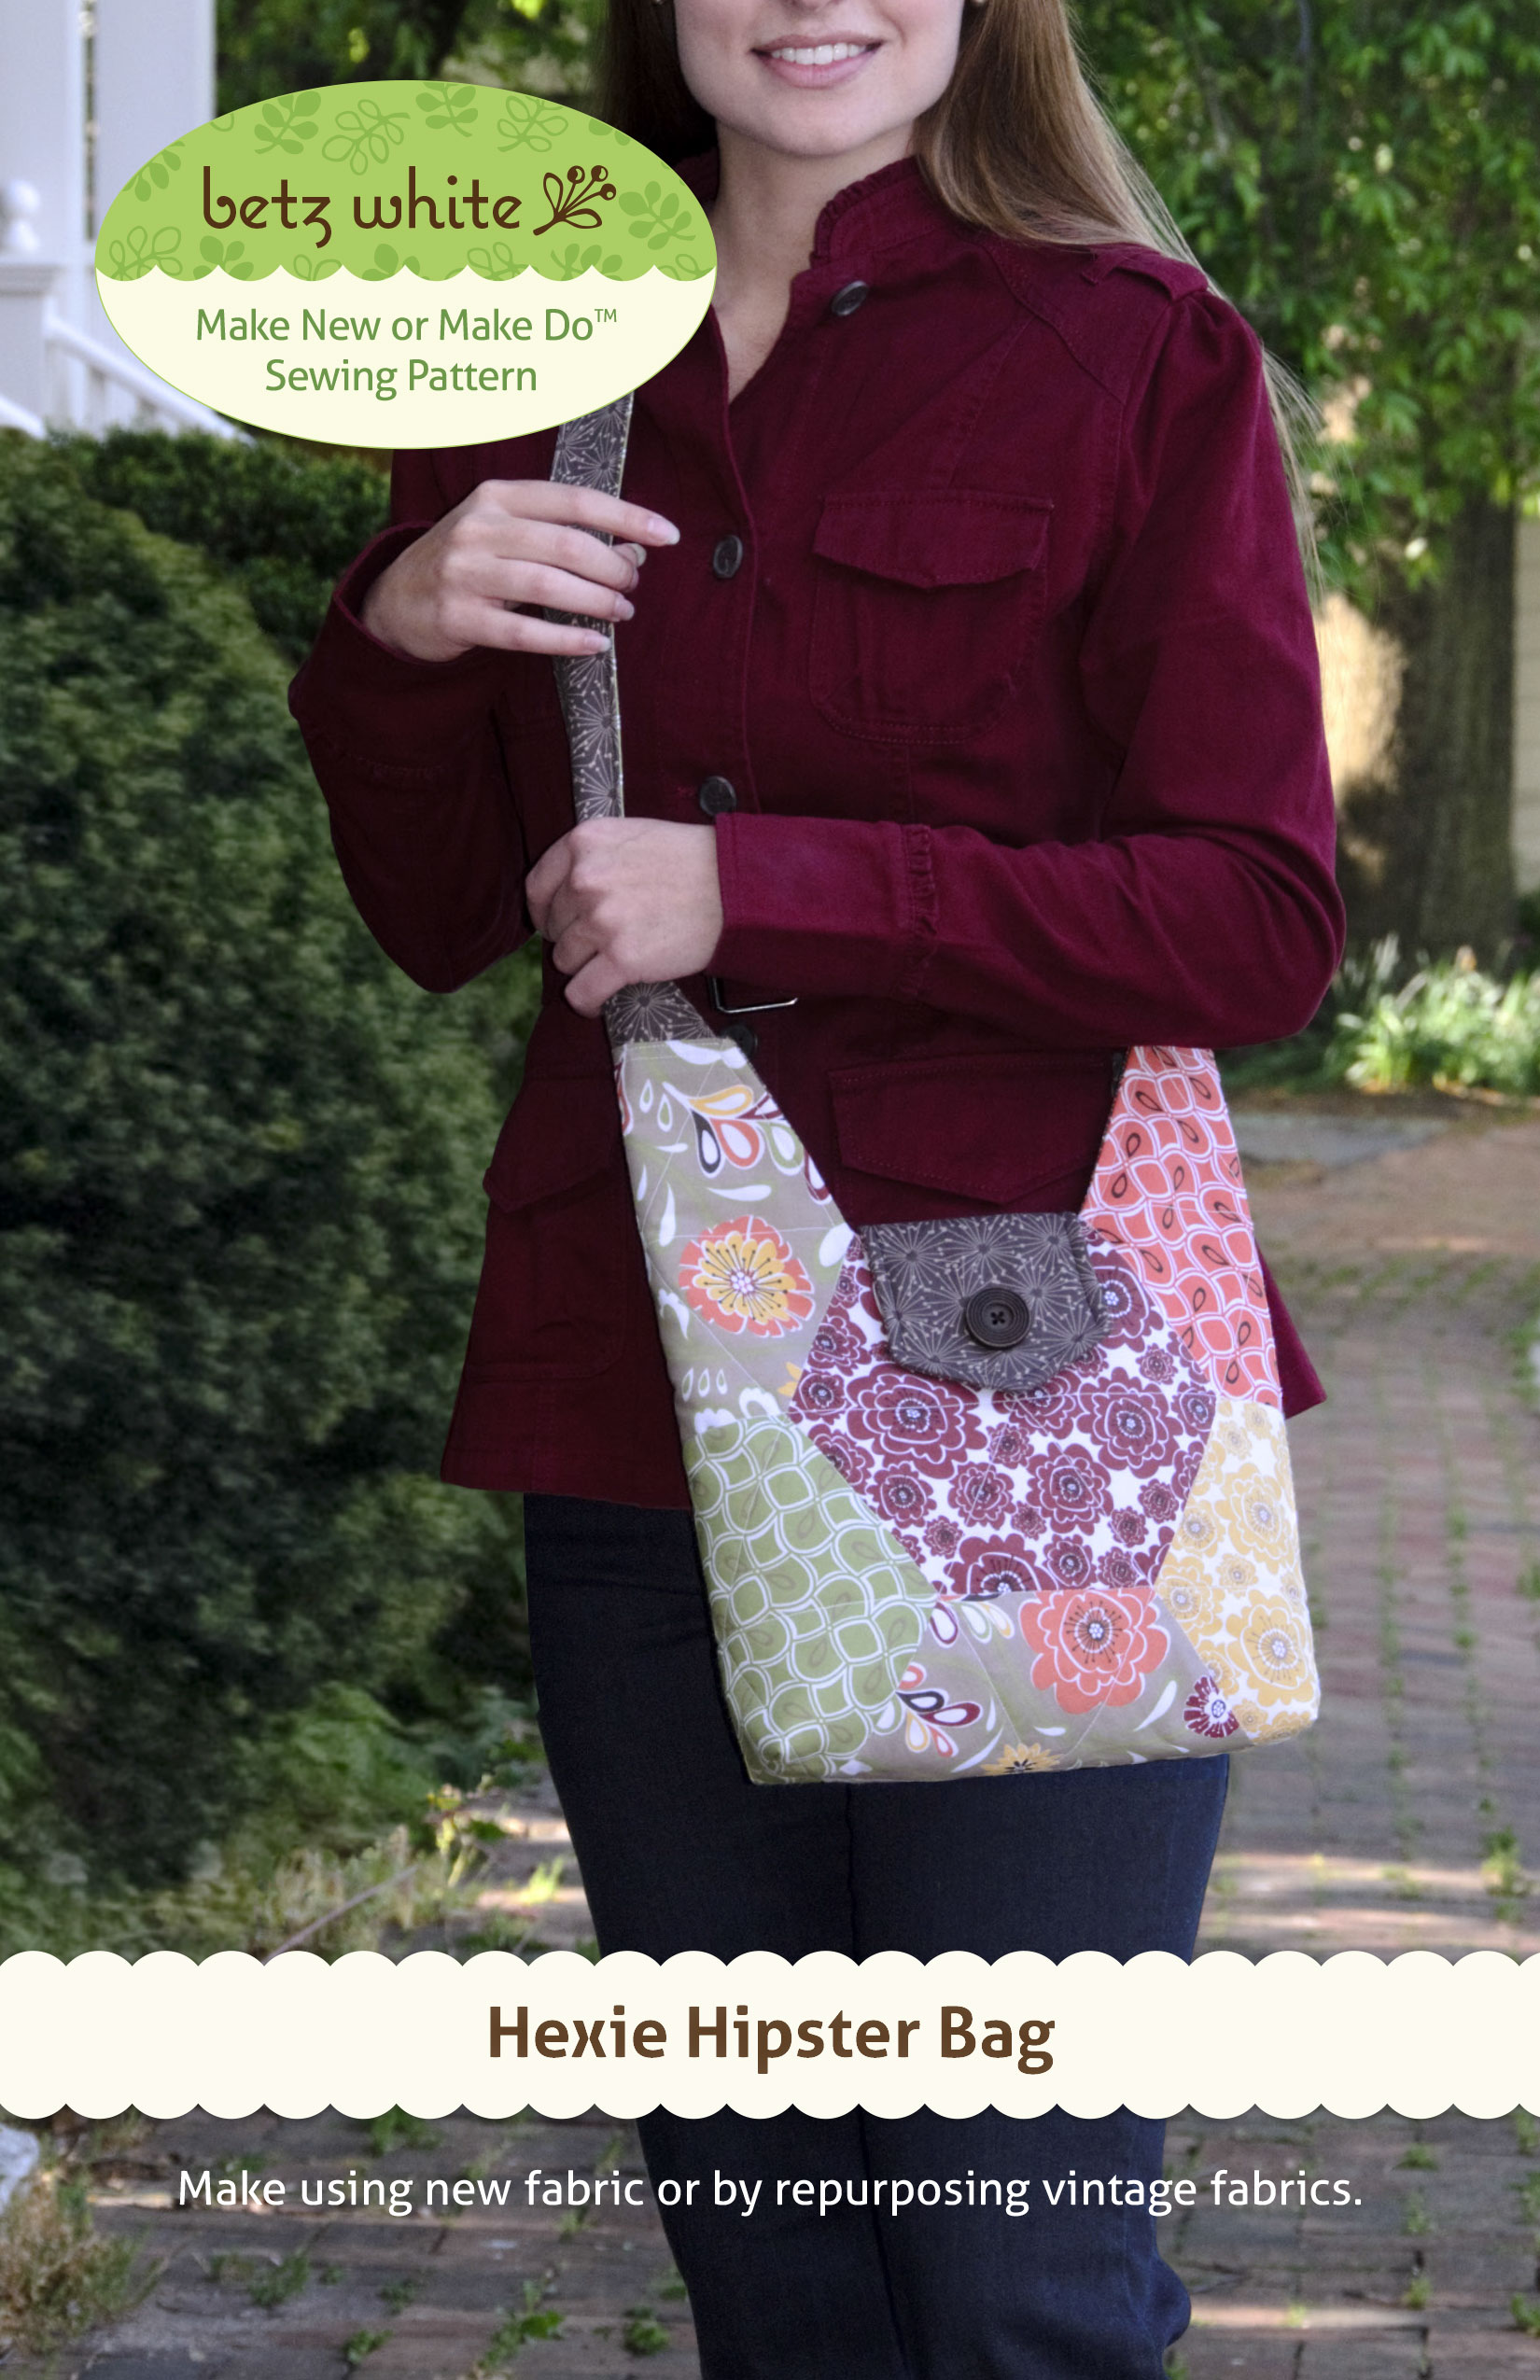 hexie hipster bag sewing pattern betz white